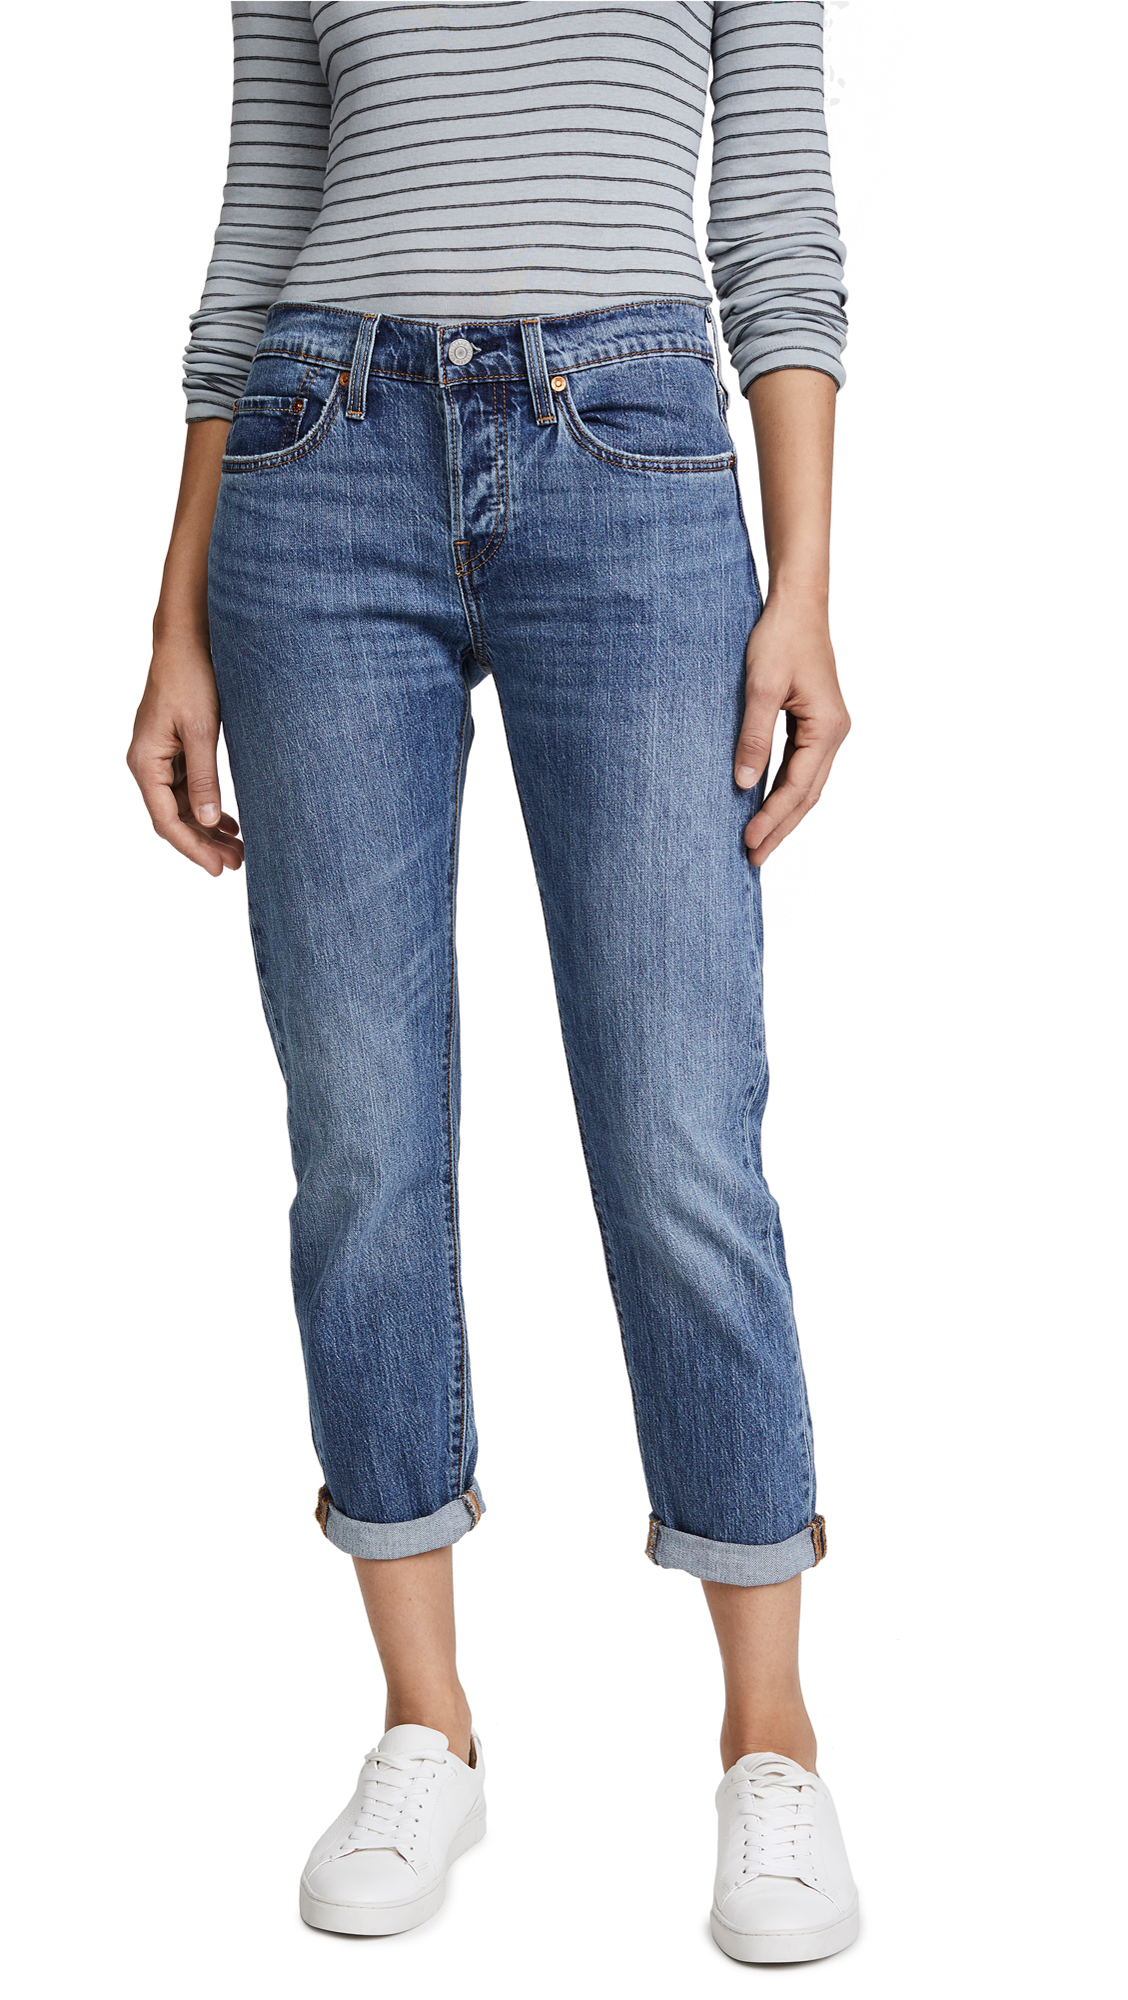 Levis 501 Taper Jeans - On My Side